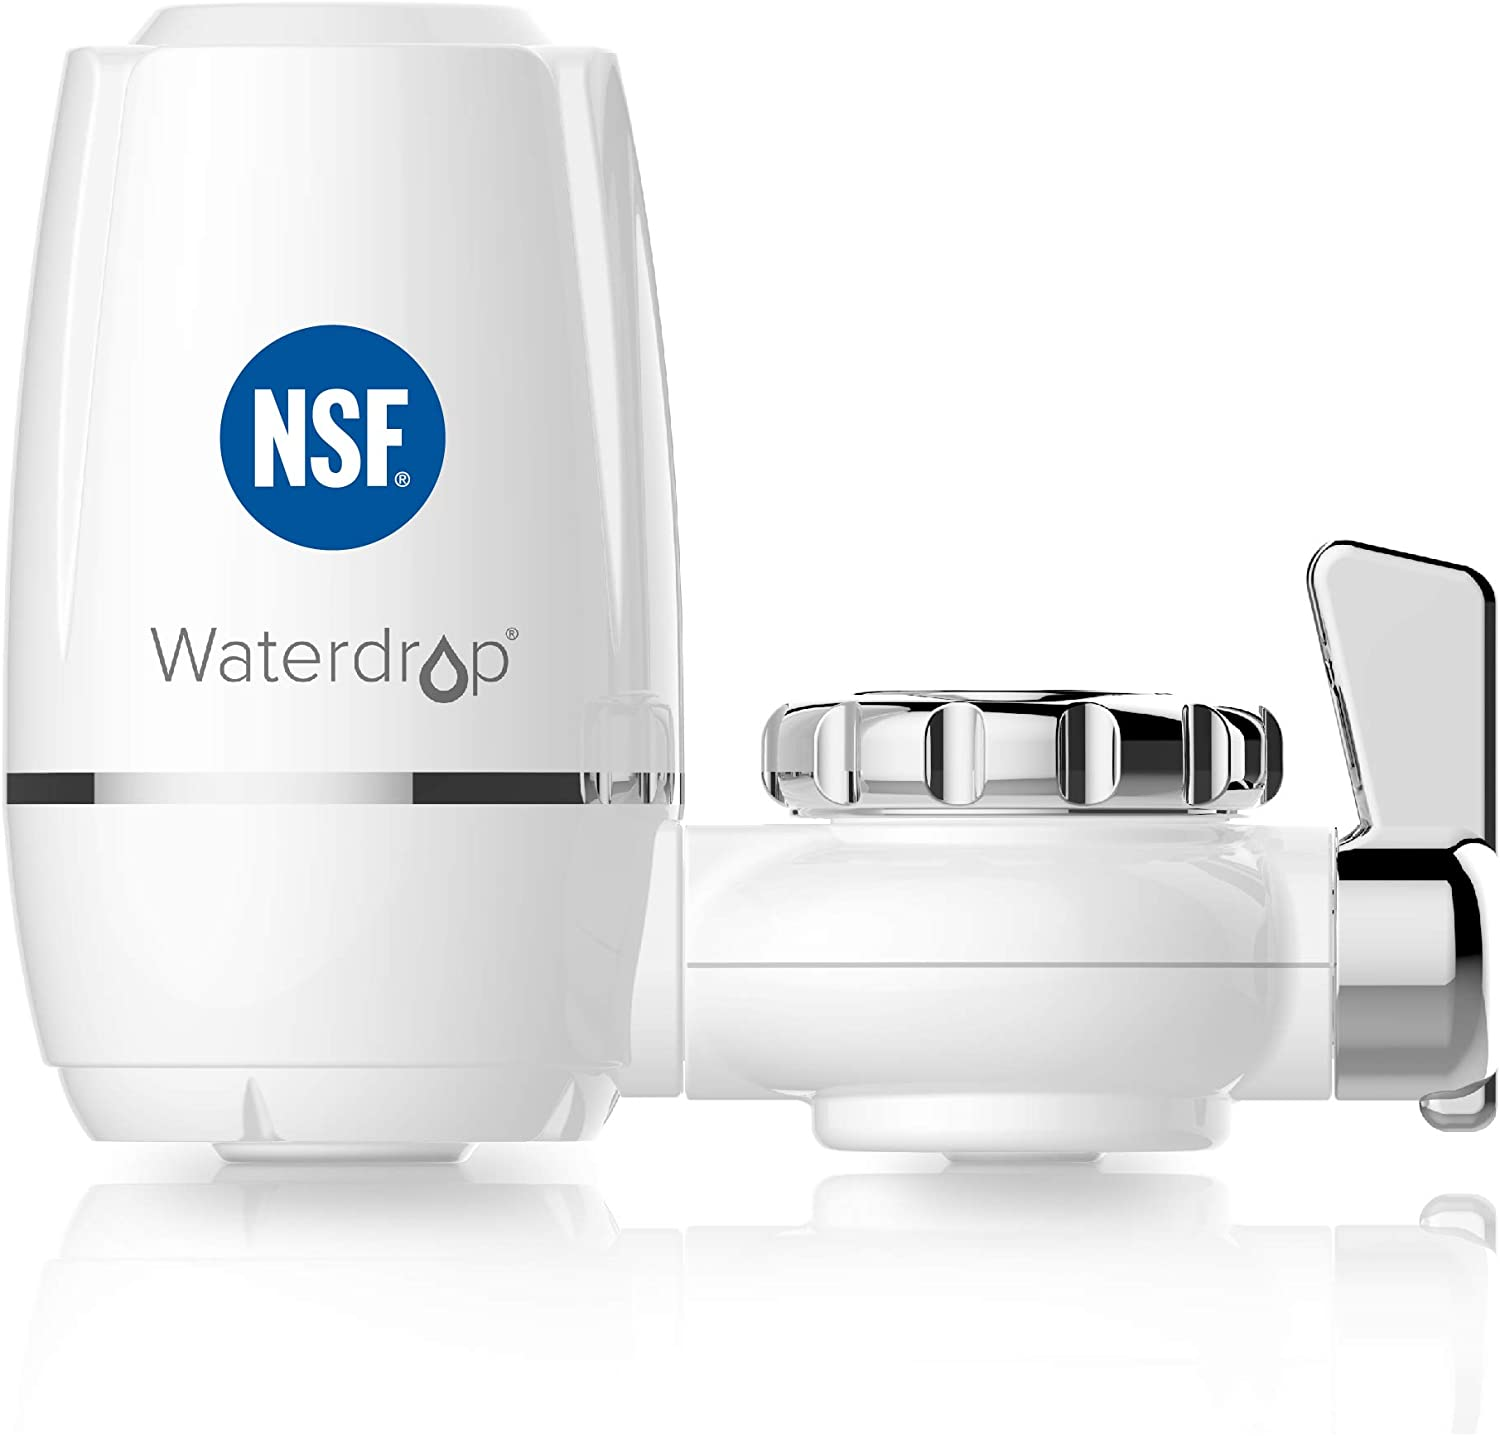 Waterdrop WD-FC-03 NSF Certified 320-Gallon Long-Lasting Water Faucet Filtration System, Faucet Filter, Removes Chlorine, Harmful Contaminants Metals & Sediments-Fits Standard Faucets,1 Filter Include